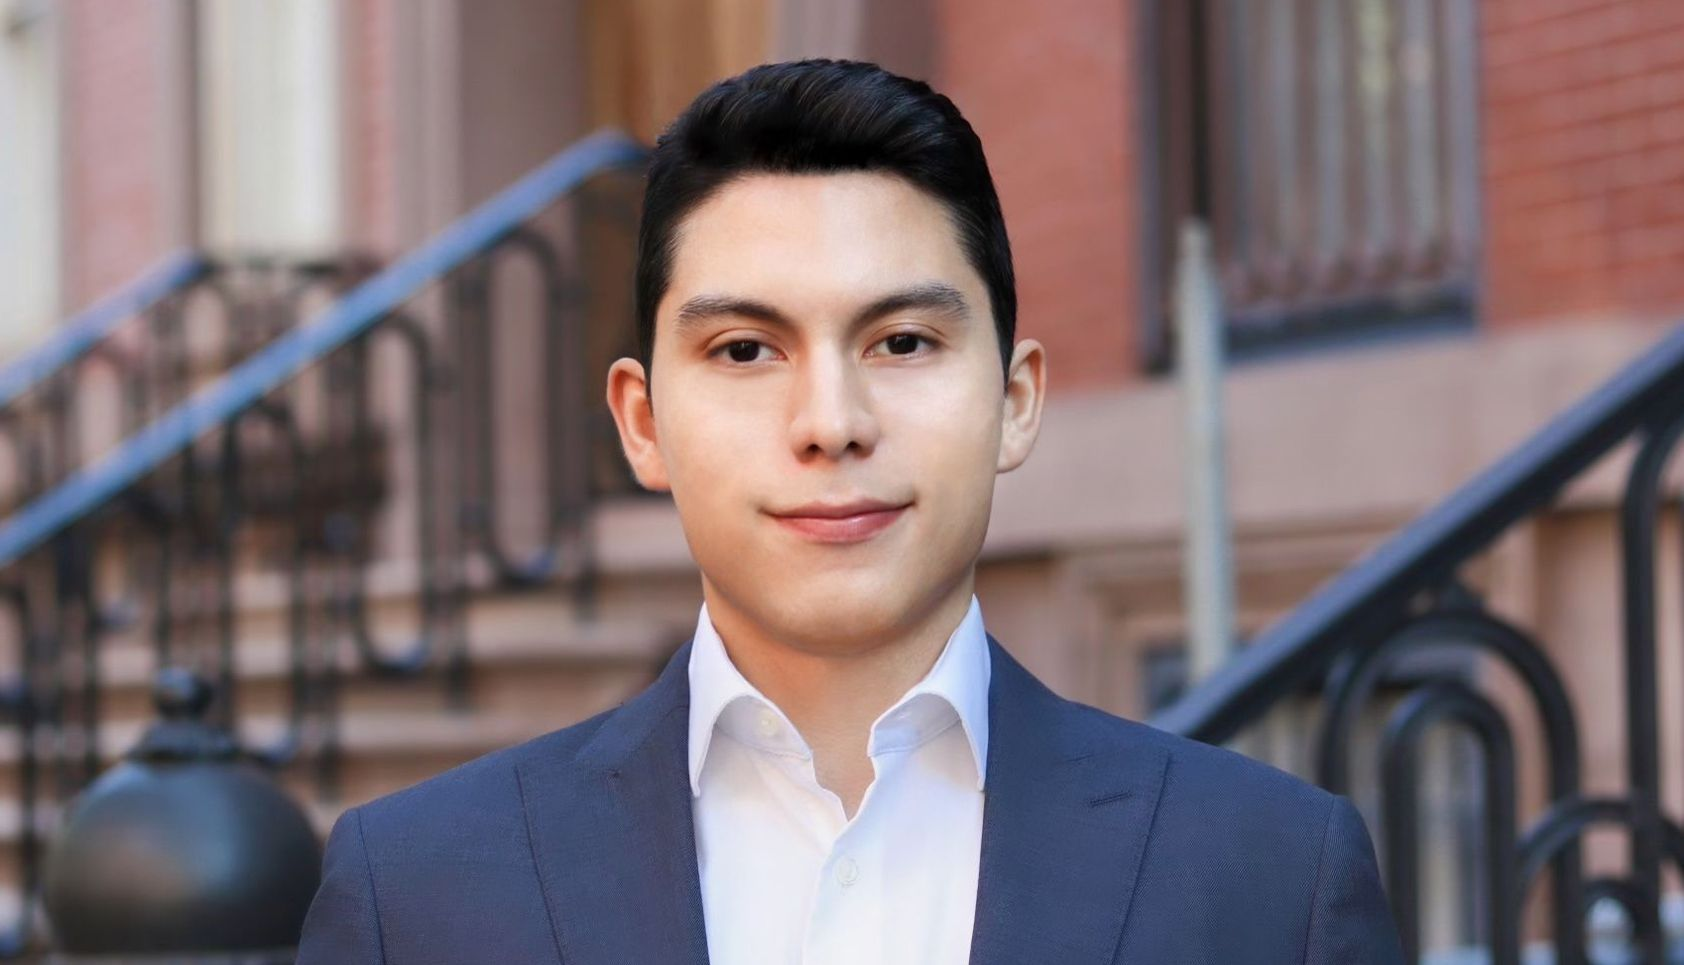 George Barrenechea is a Licensed Real Estate Salesperson at HomeDax Real Estate NYC. Contact George today to discuss your sale, purchase or rental needs.